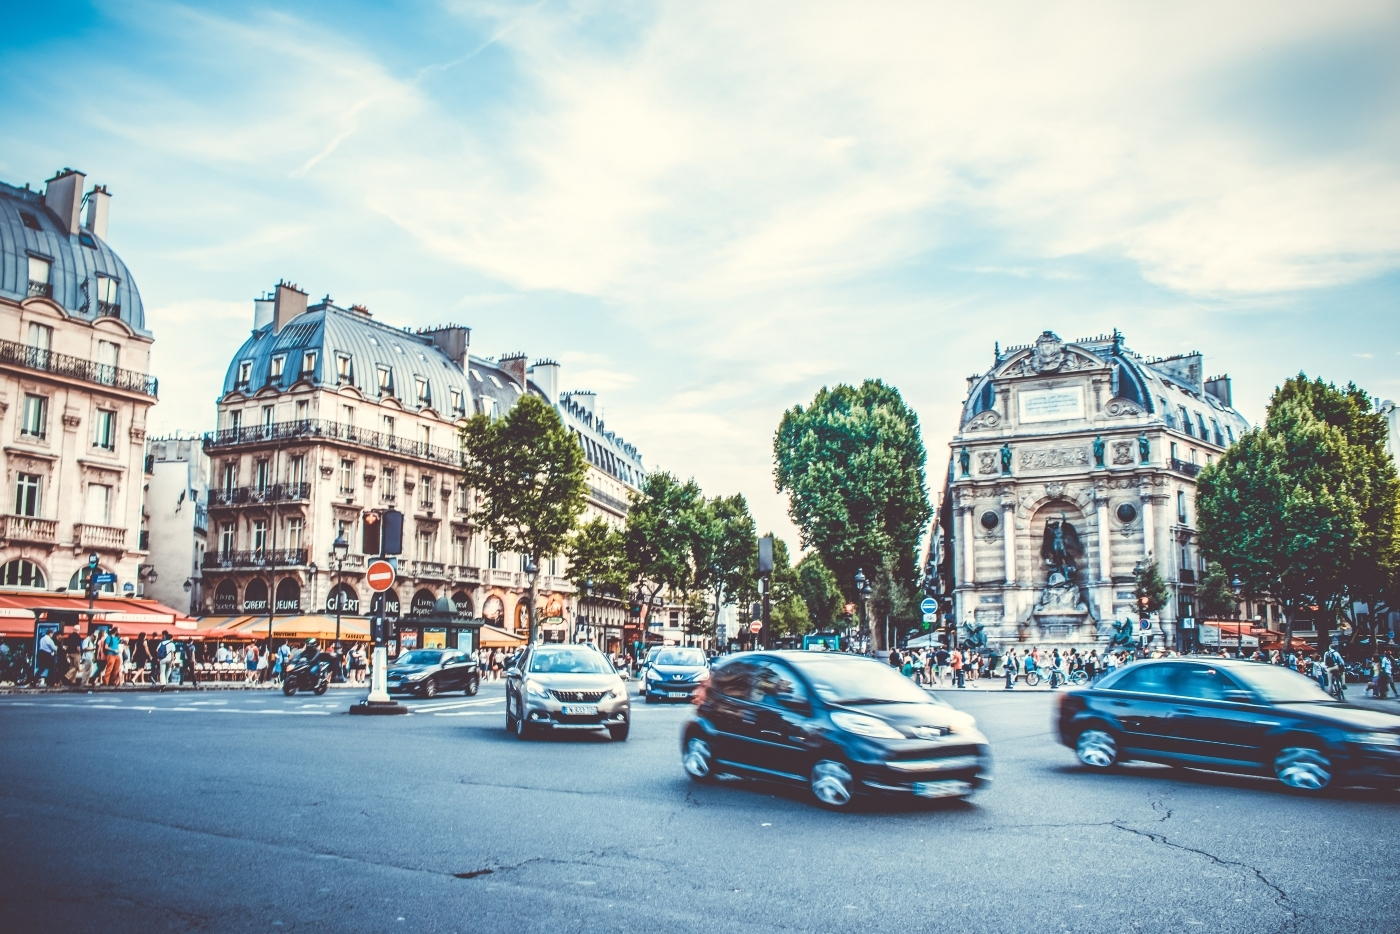 Busy intersection in Paris